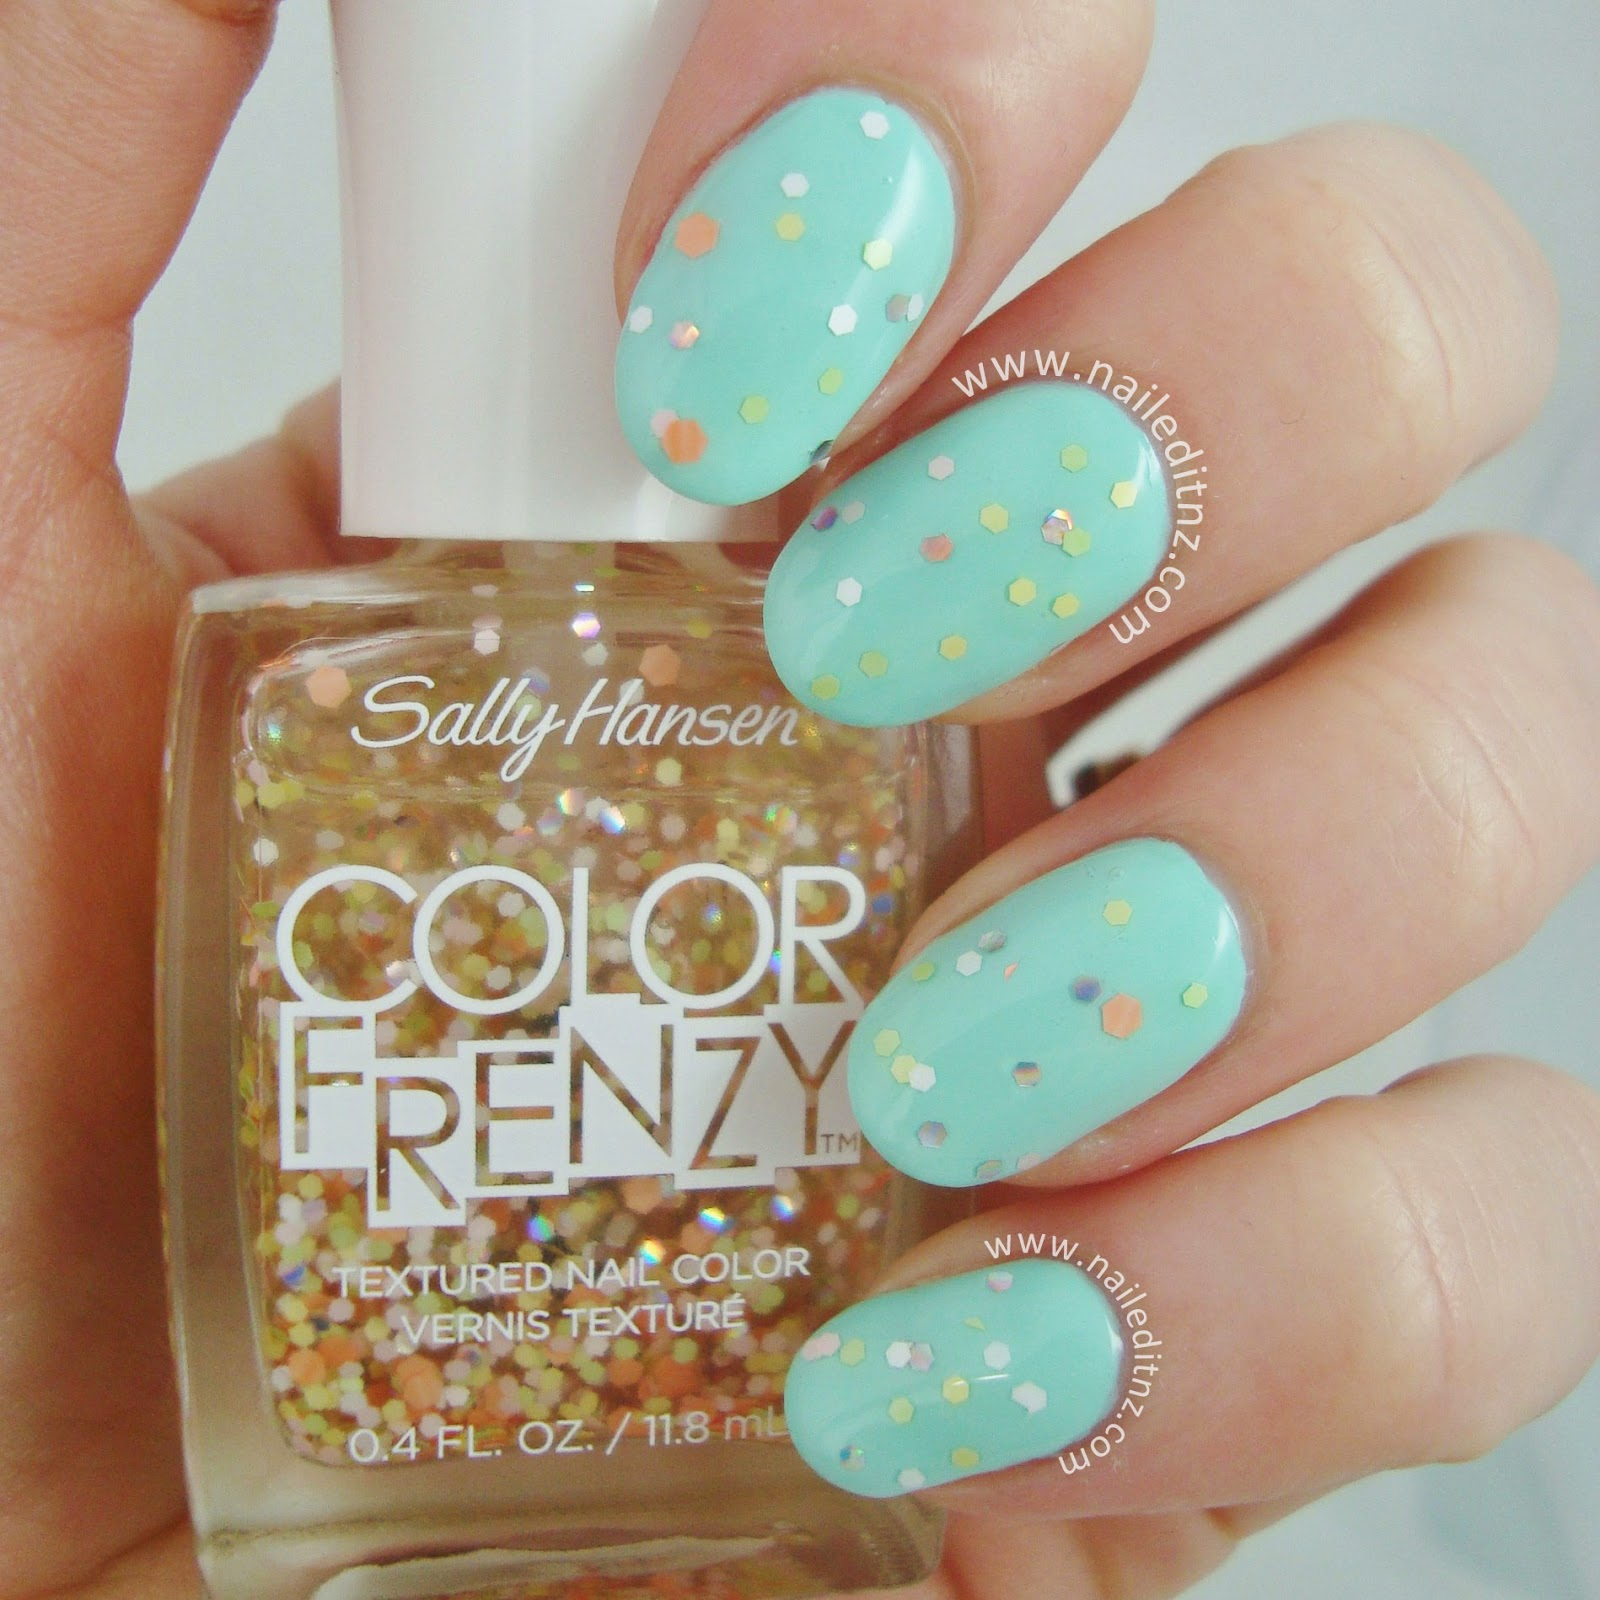 Sally Hansen Color Frenzy | Swatches & Review